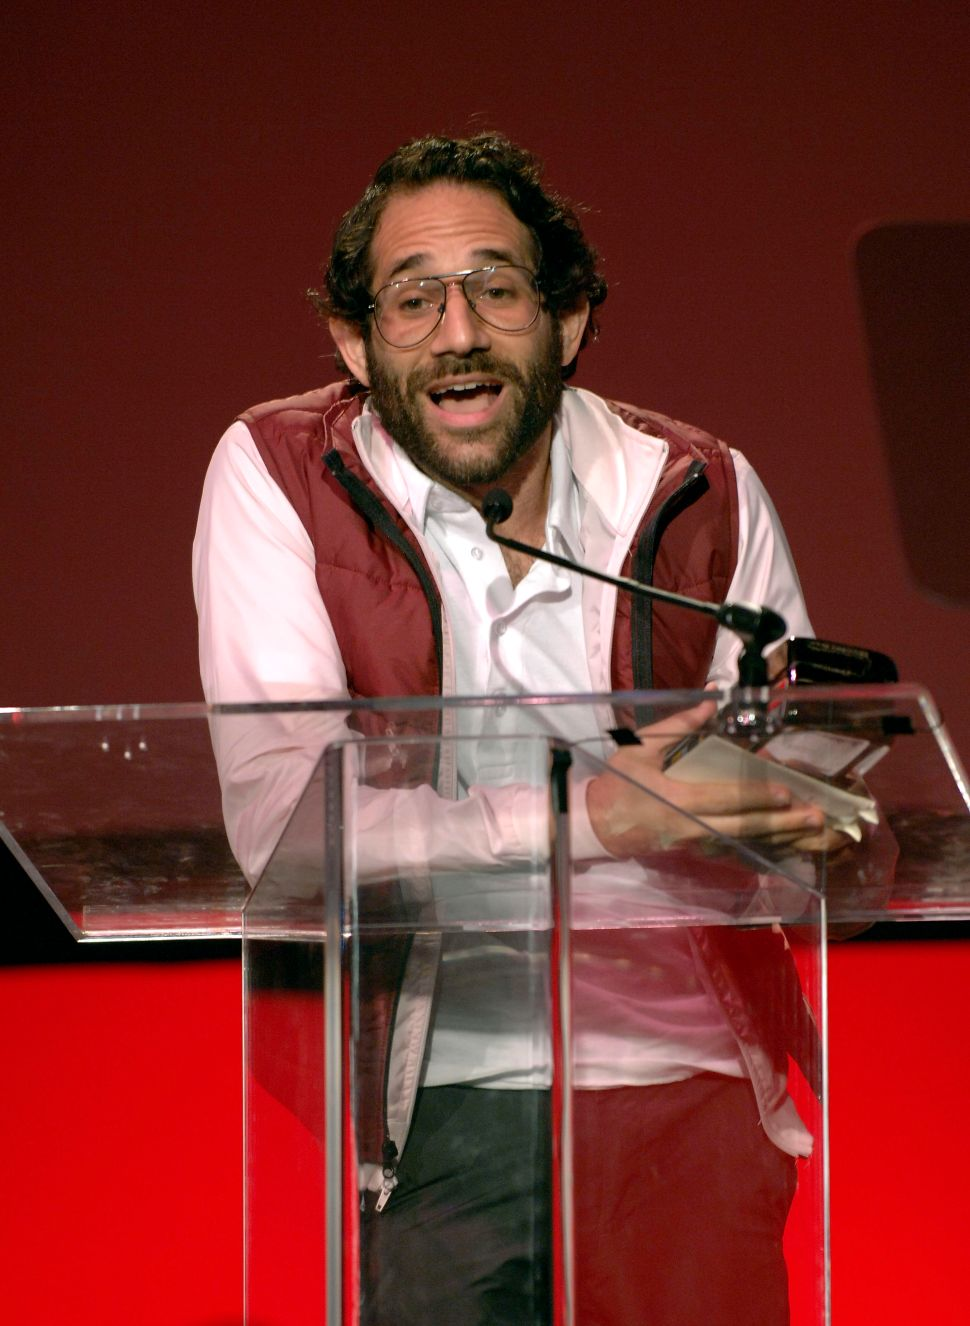 Dov Charney Sneaks Into an American Apparel Store Even Though He's Banned From Them